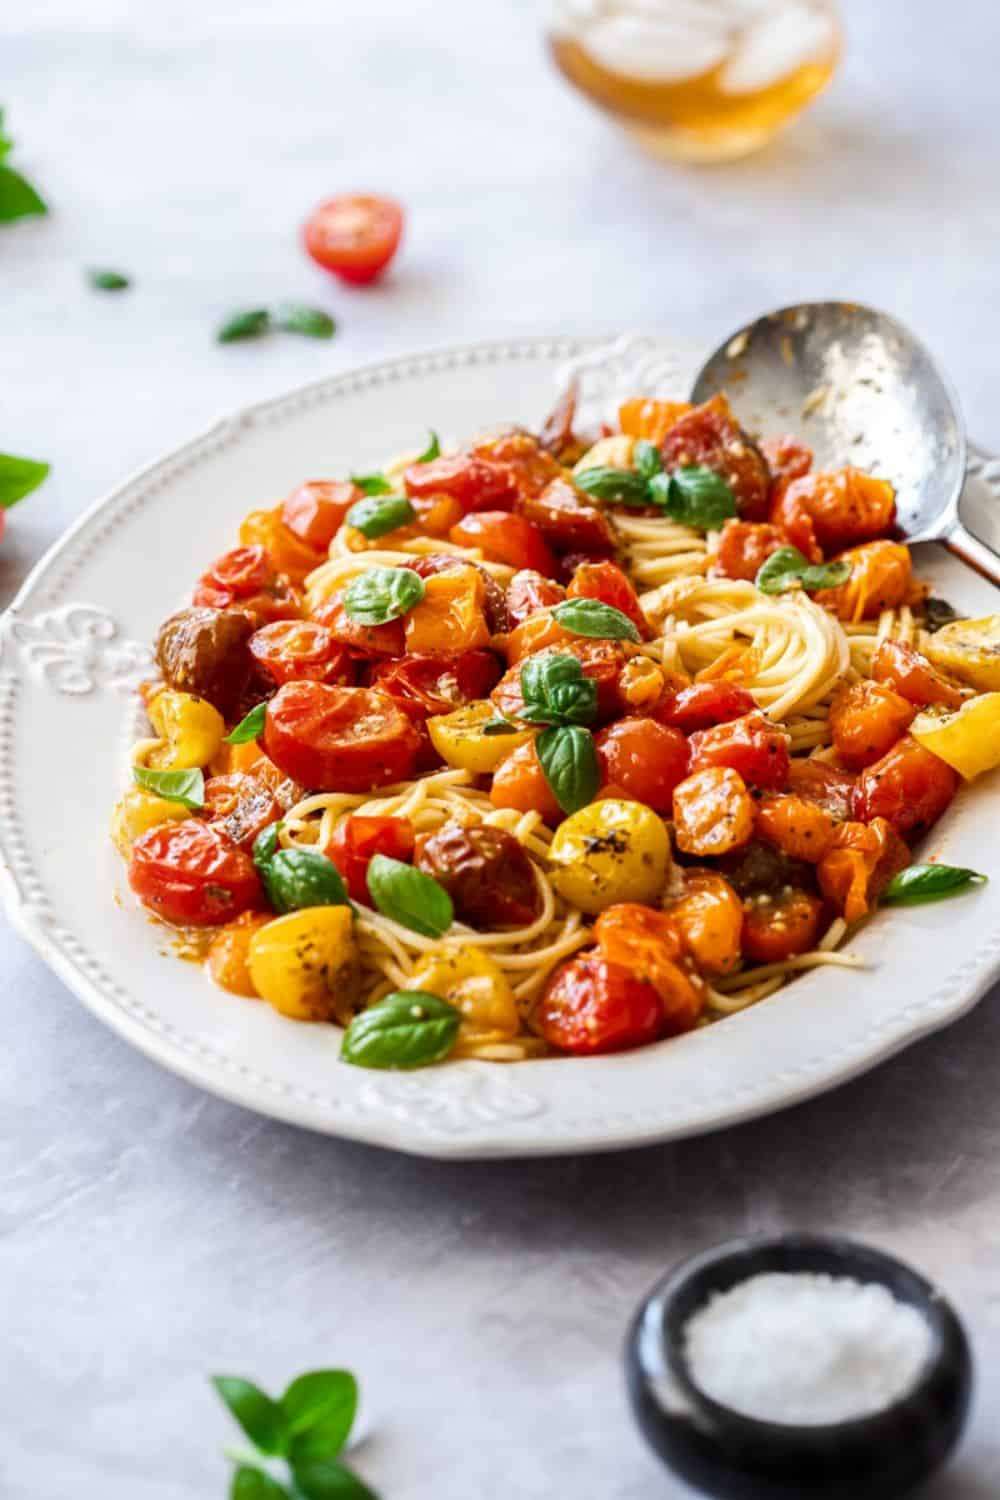 large white platter of pasta, topped with roasted tomato sauce and garnished with basil leaves. silver spoon on edge of dish.